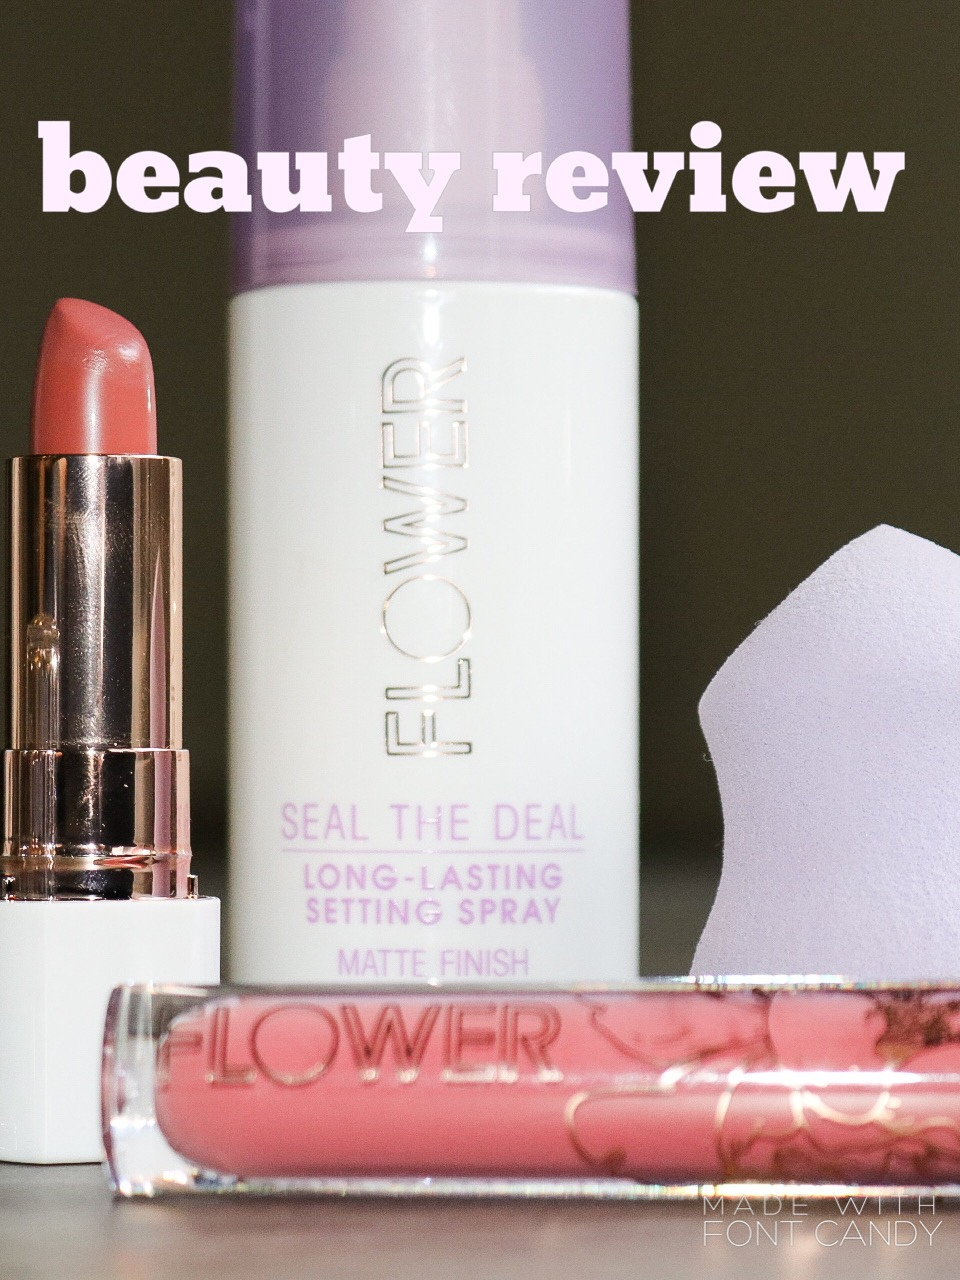 Flower beauty review xoxo tat flower beauty review izmirmasajfo